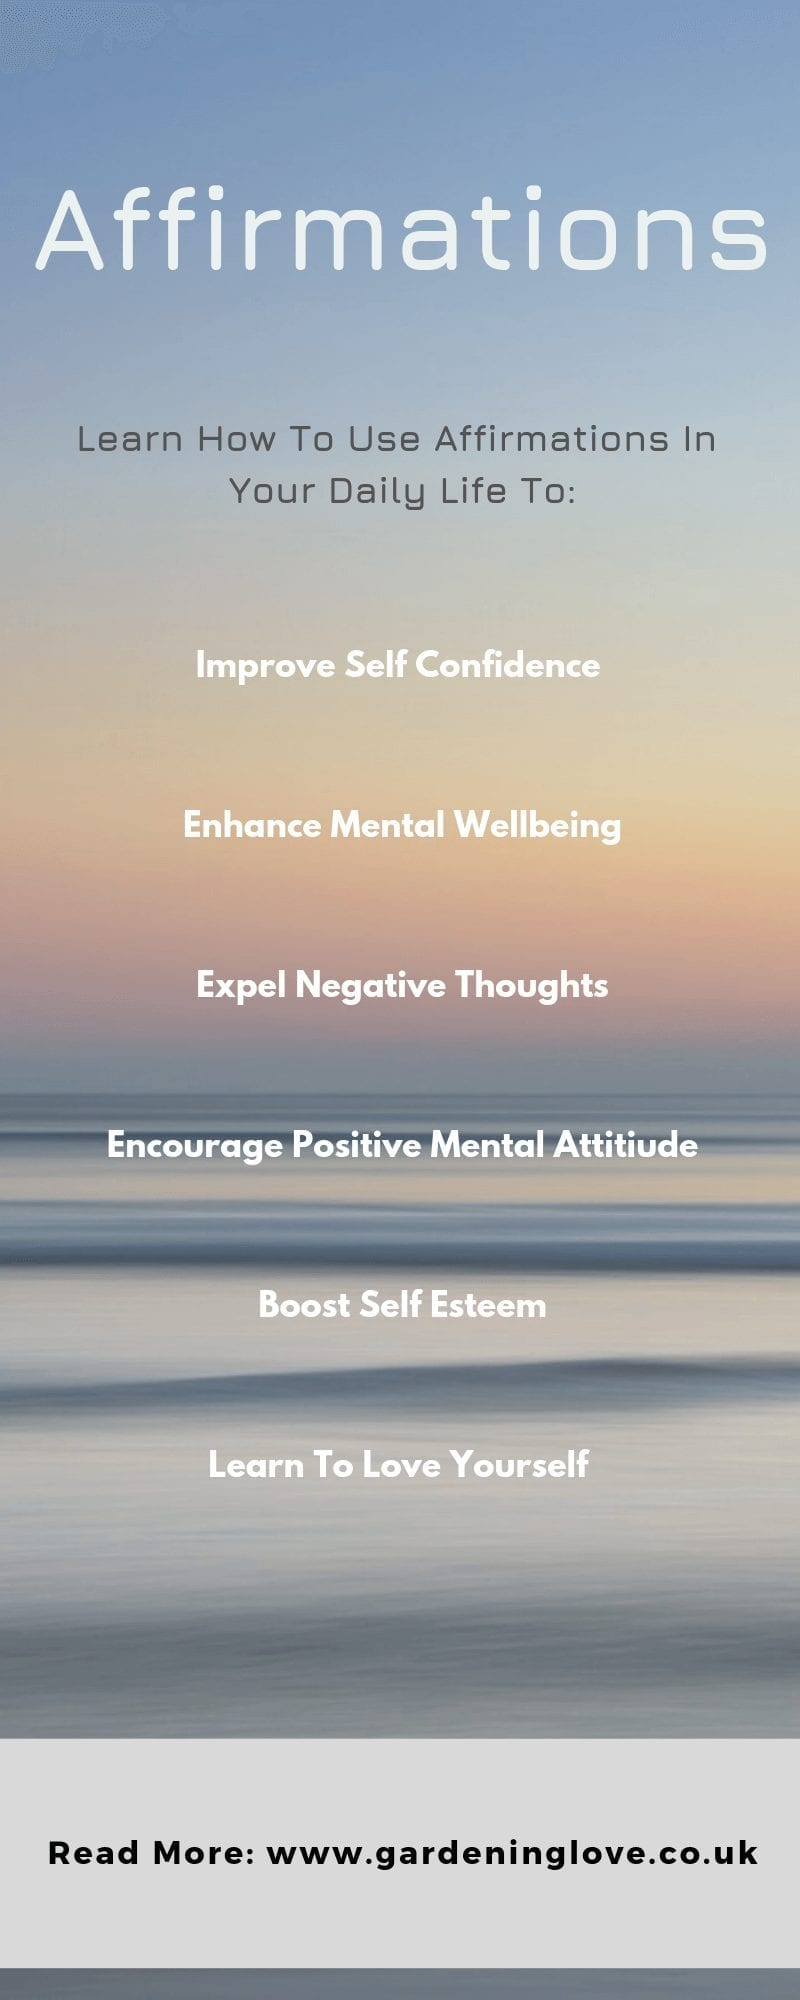 how to use daily affirmations to increase confidence and self esteem